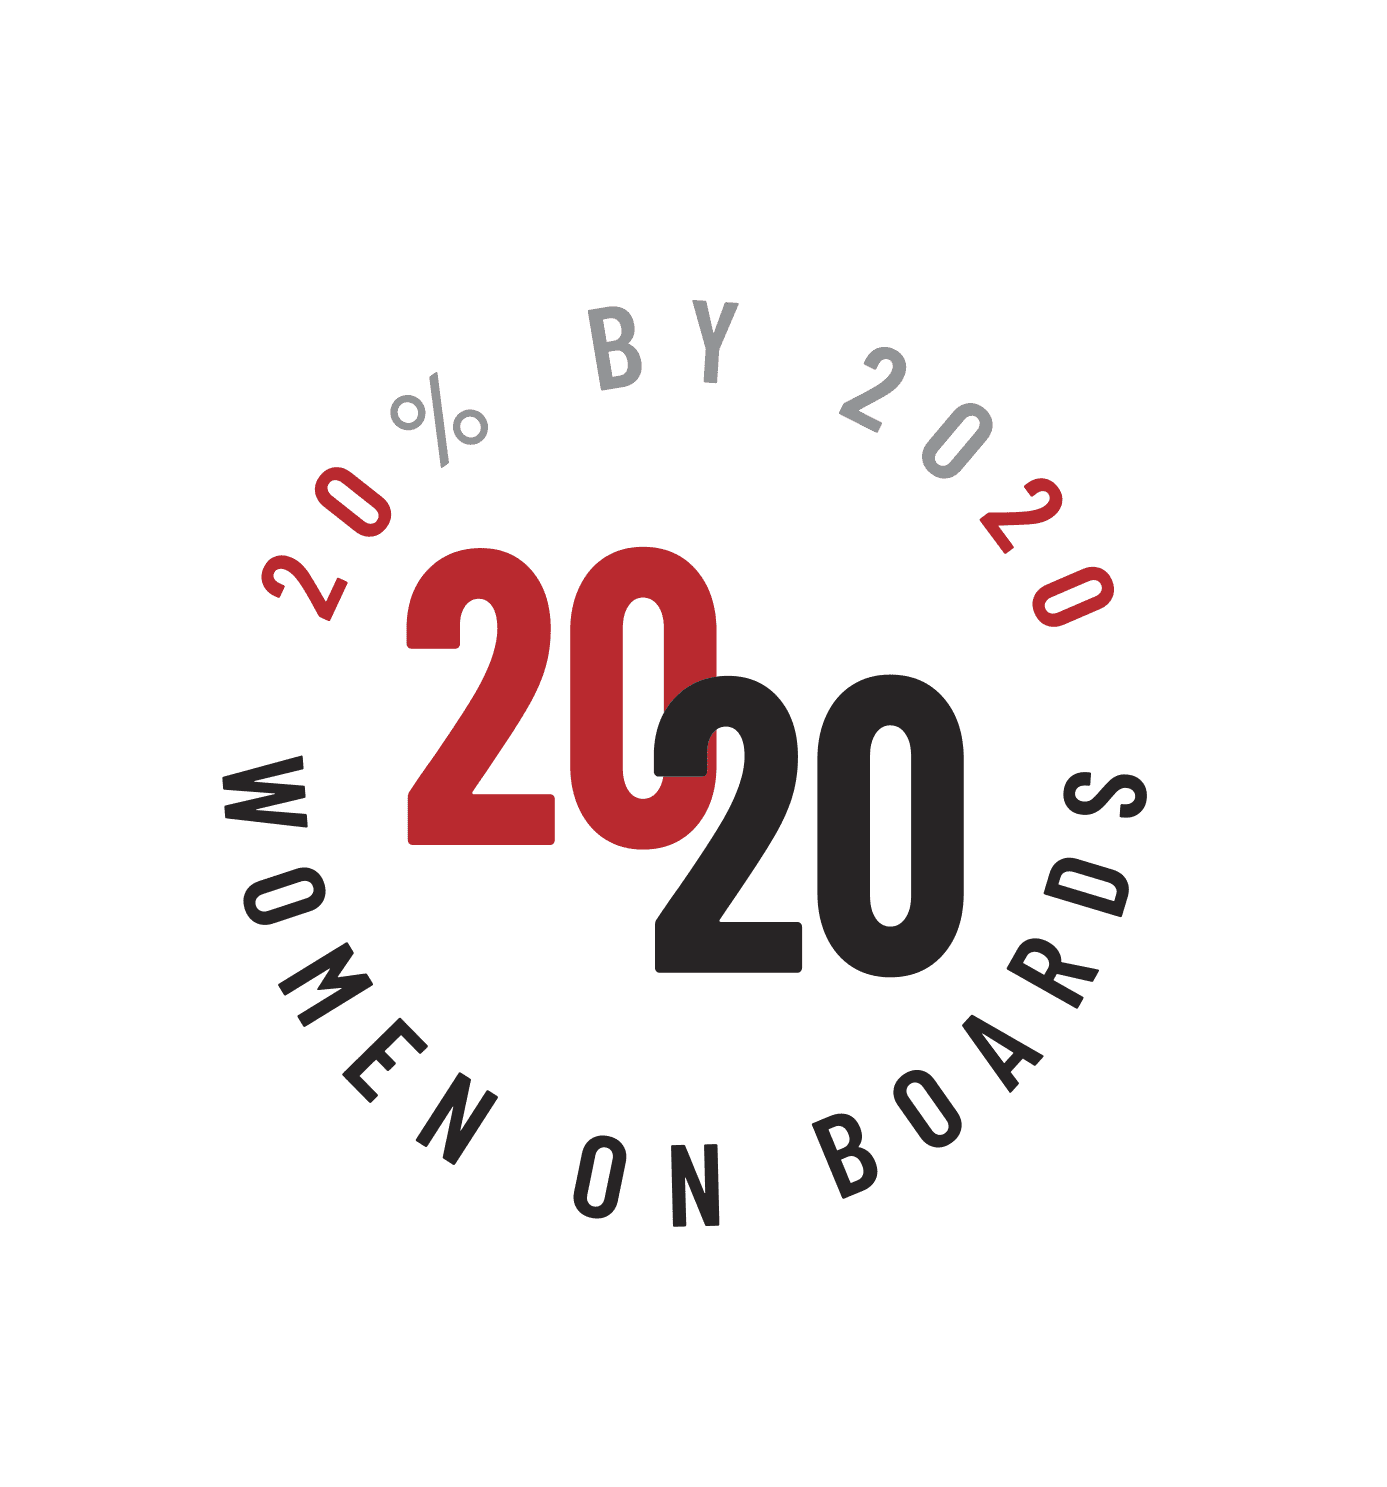 SPS Commerce Honored by 2020 Women on Boards for Gender Diversity